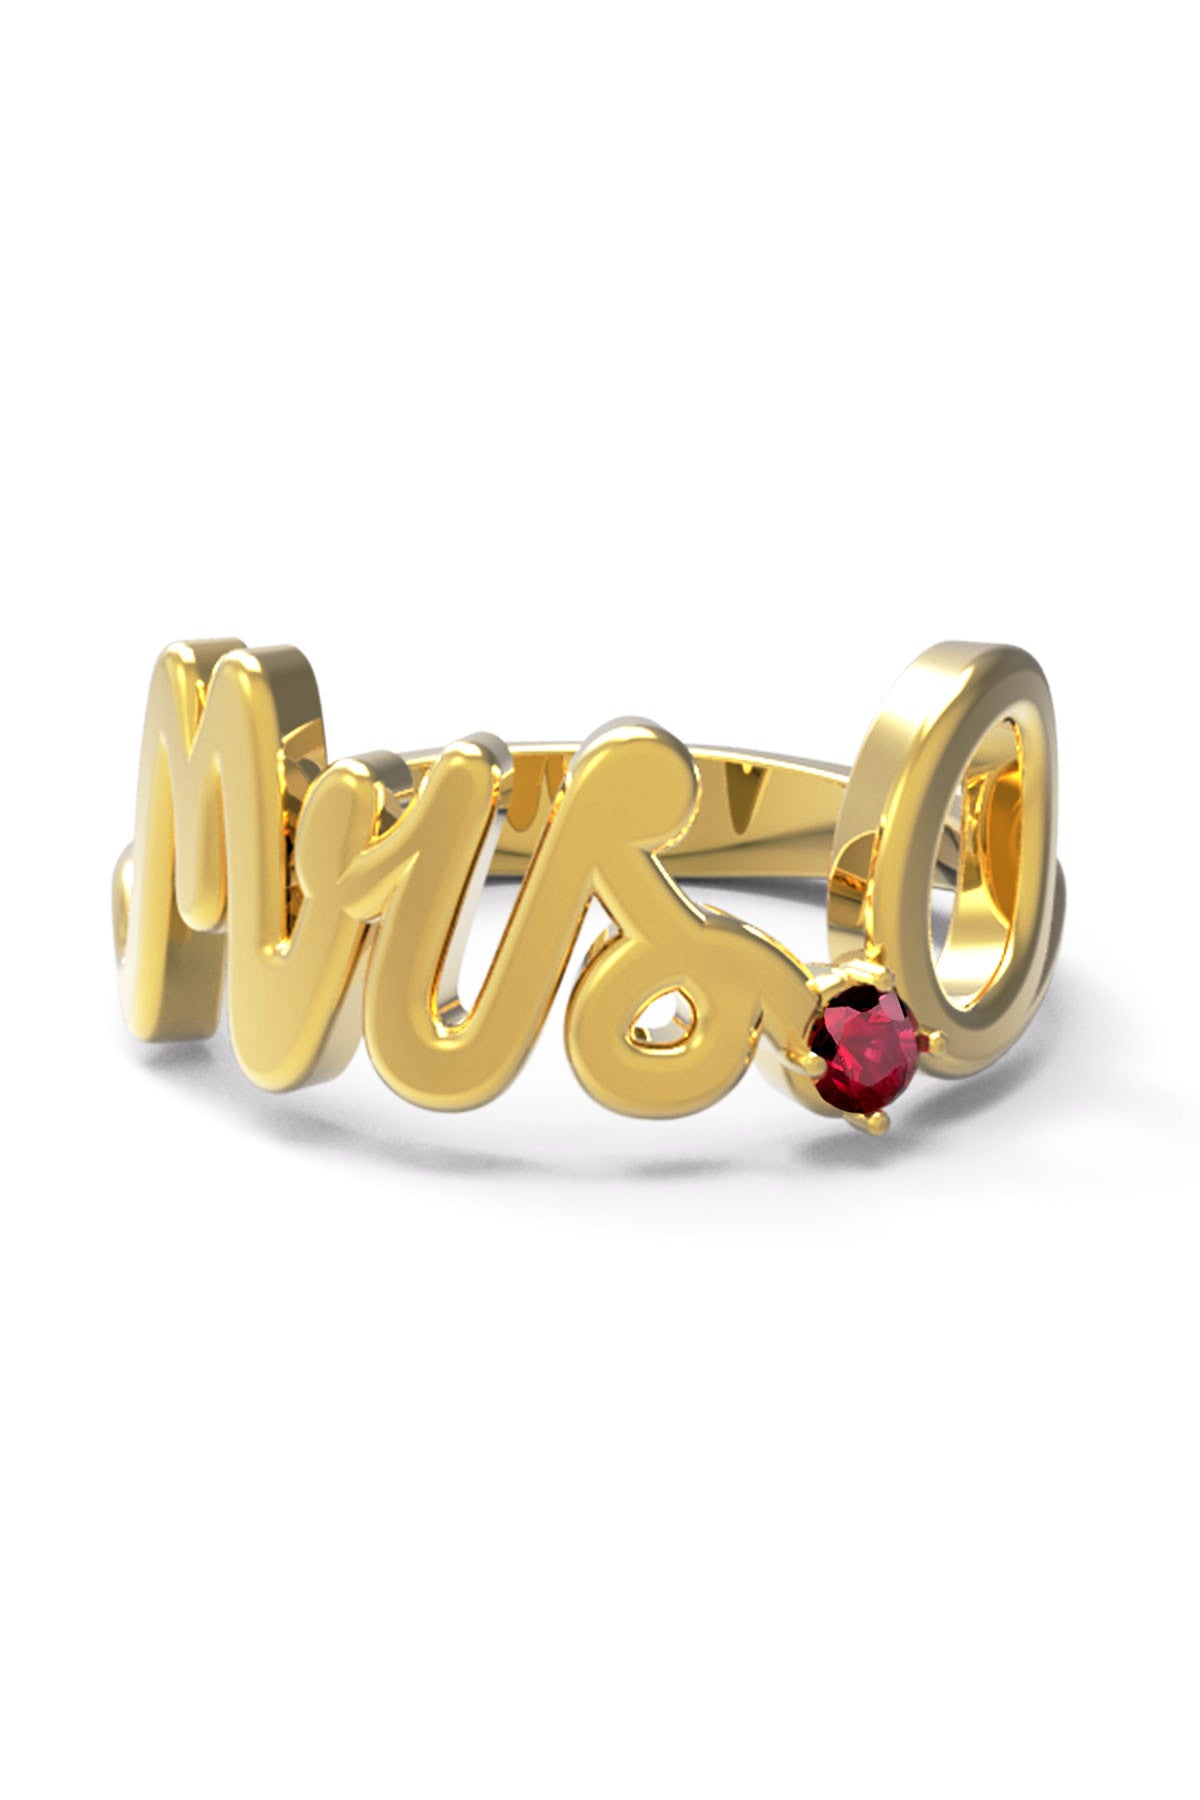 Mrs. O Ring - In Stock